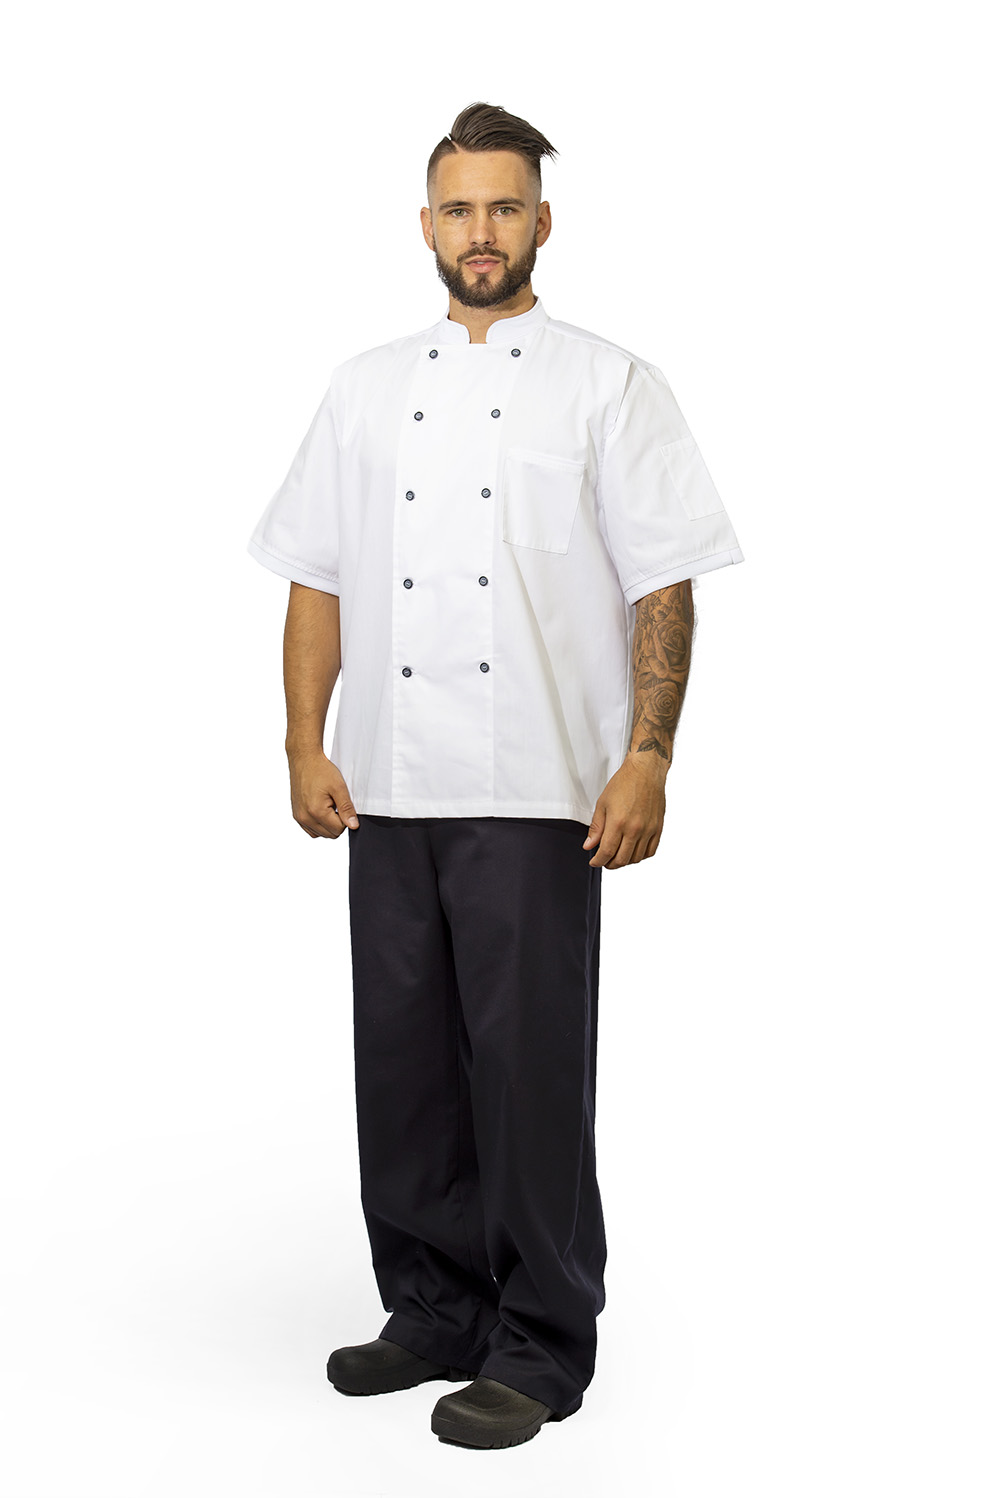 white birdseye chef jacket full